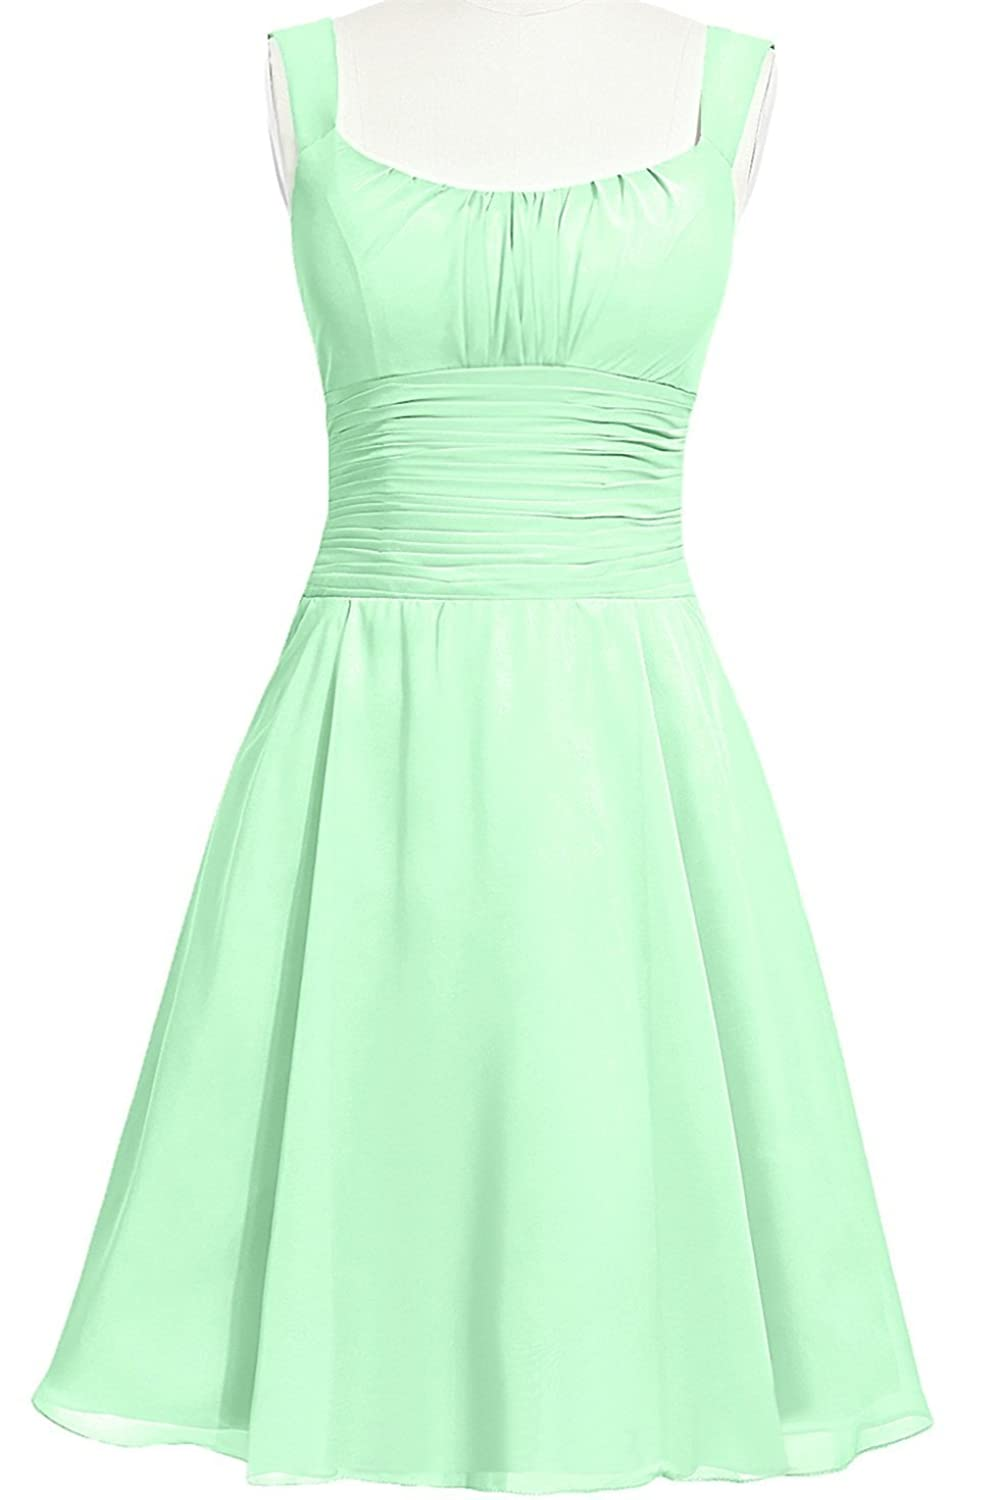 MittyDressesWomens Evening Homecoming Prom Party Cocktail Dress Size 26W US Mint